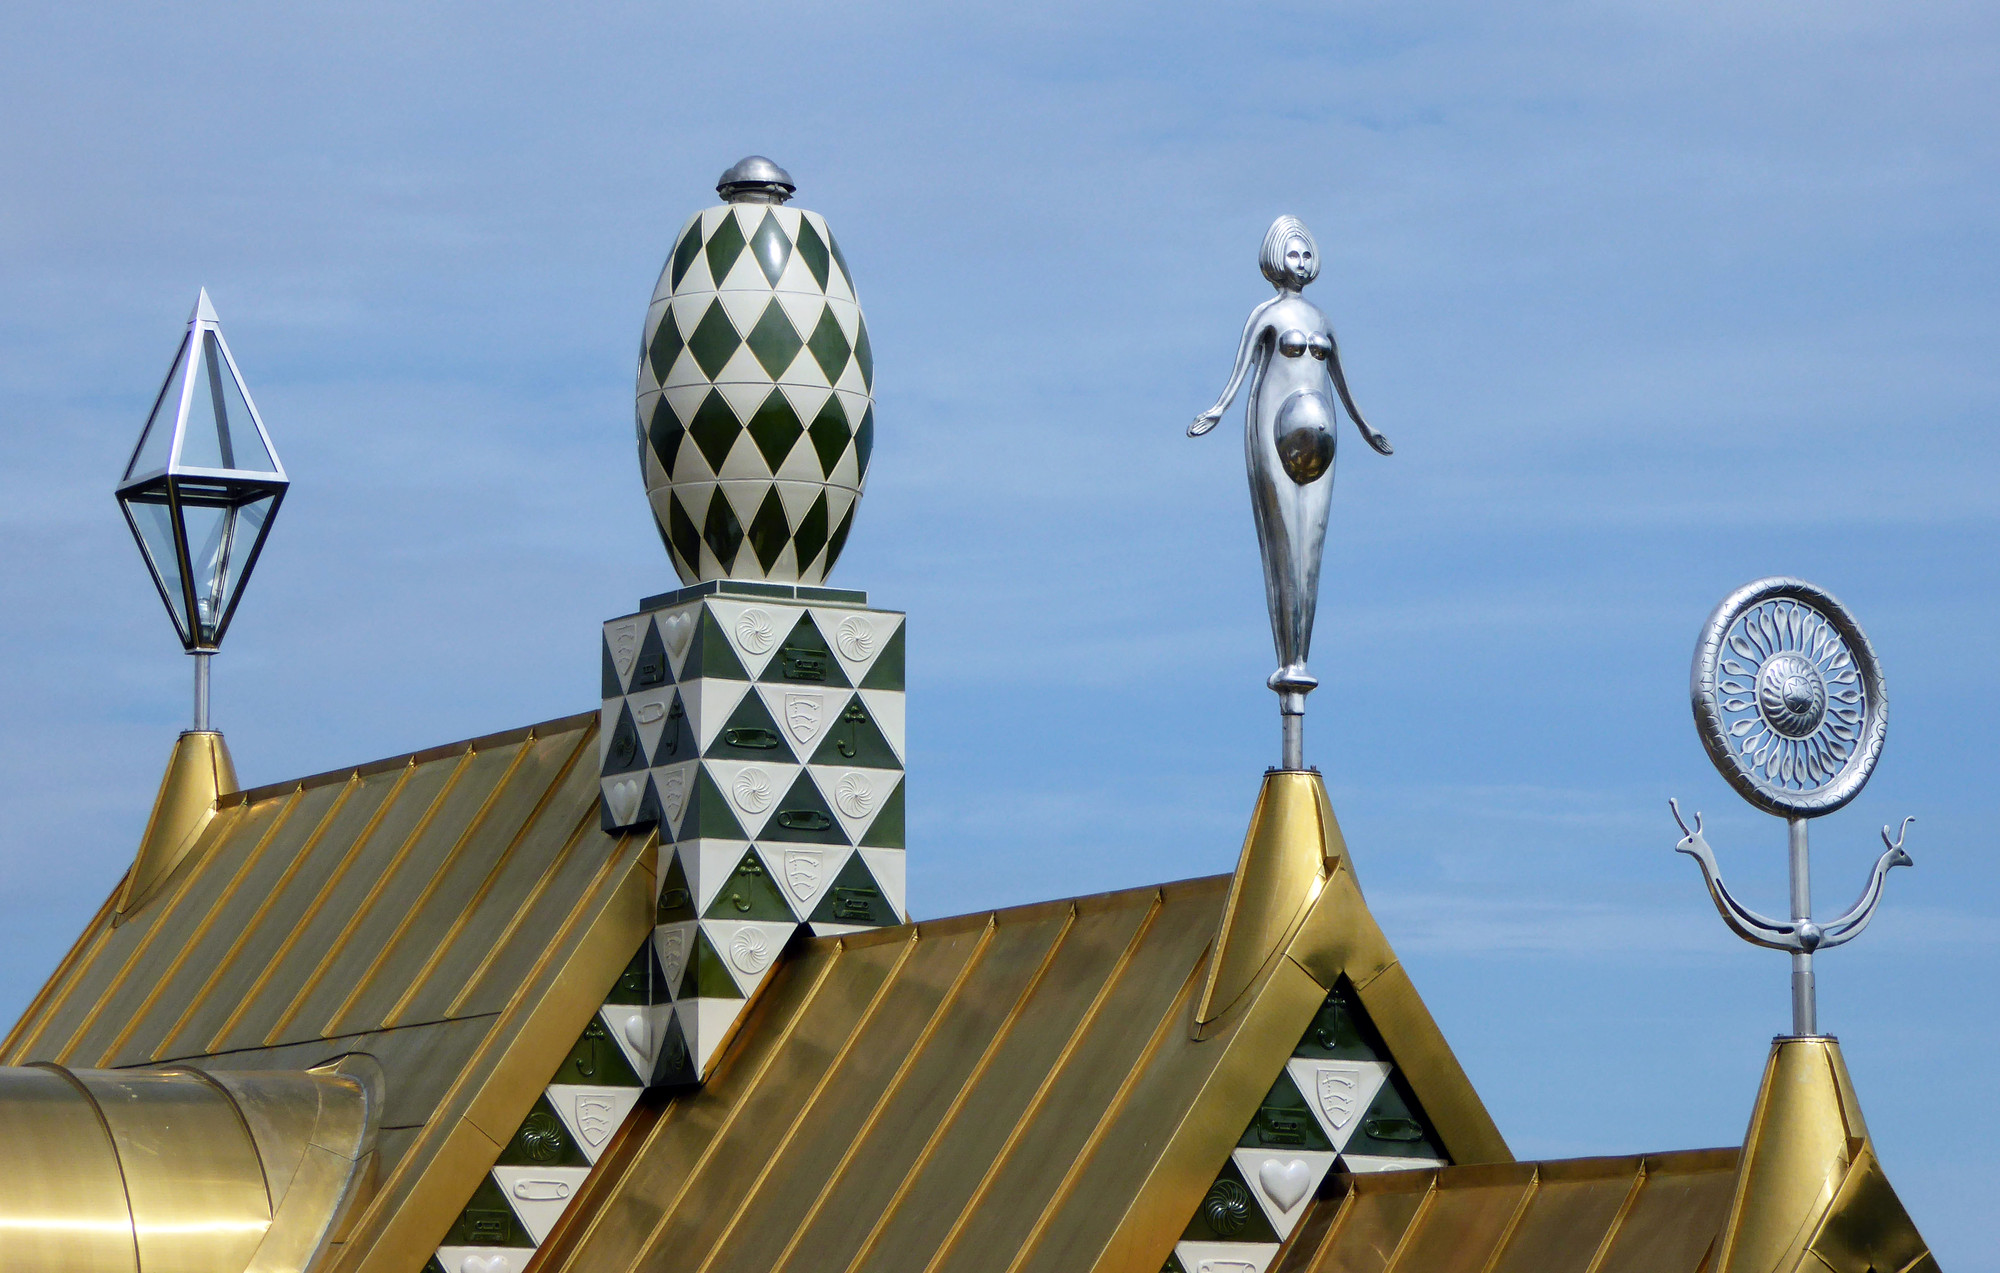 Sculptures by Grayson Perry. Image © FAT/ Living Architecture